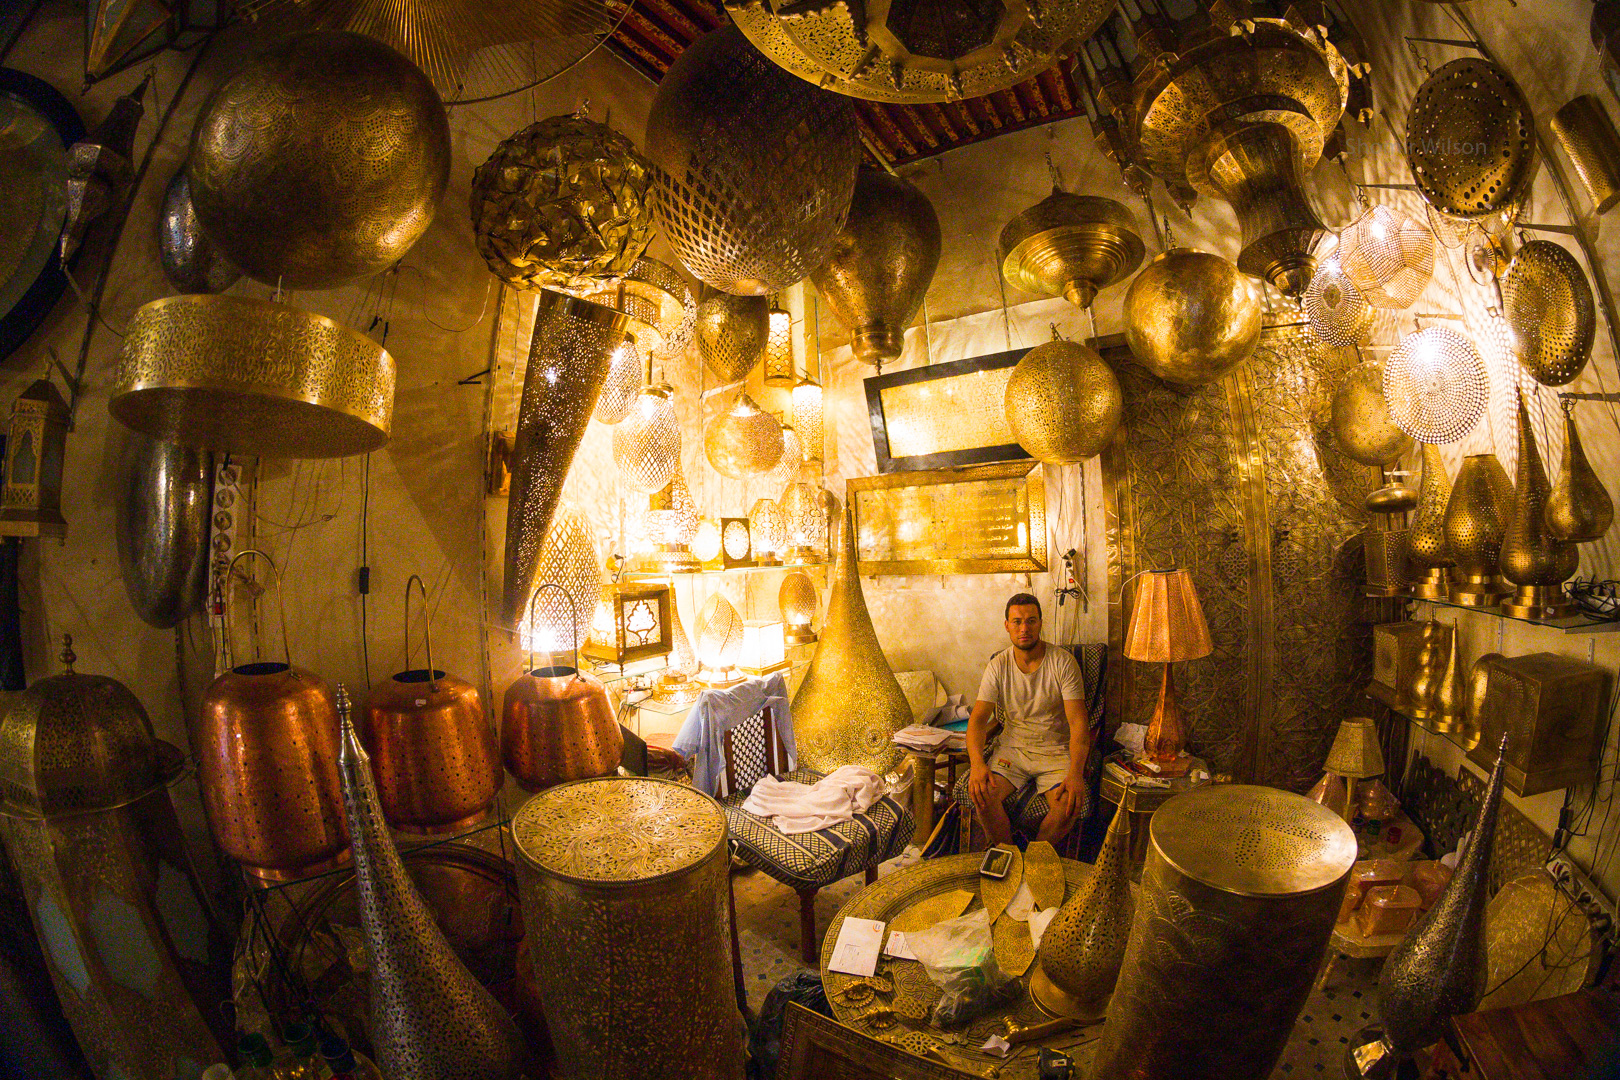 Intricate brass lamps in a lamp shop, with a man sitting in the back